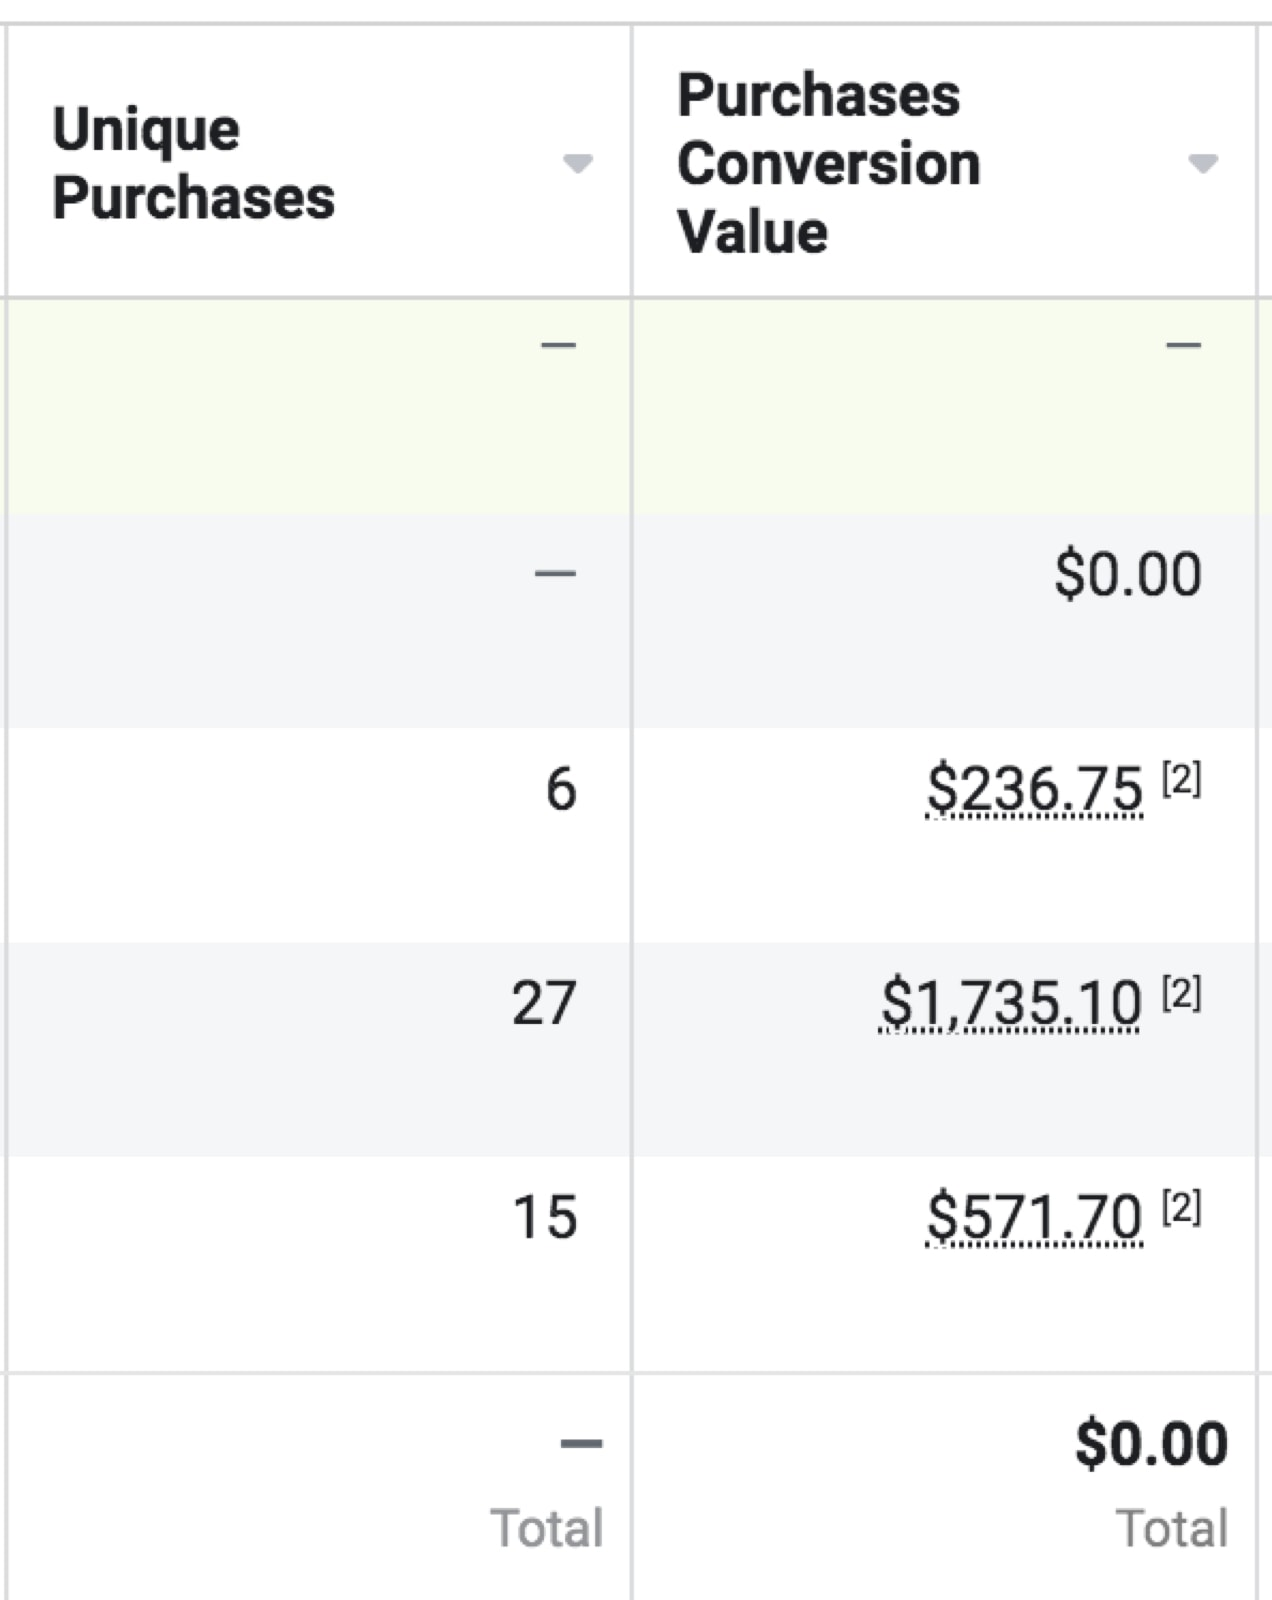 table with unique purchases and purchases conversion values